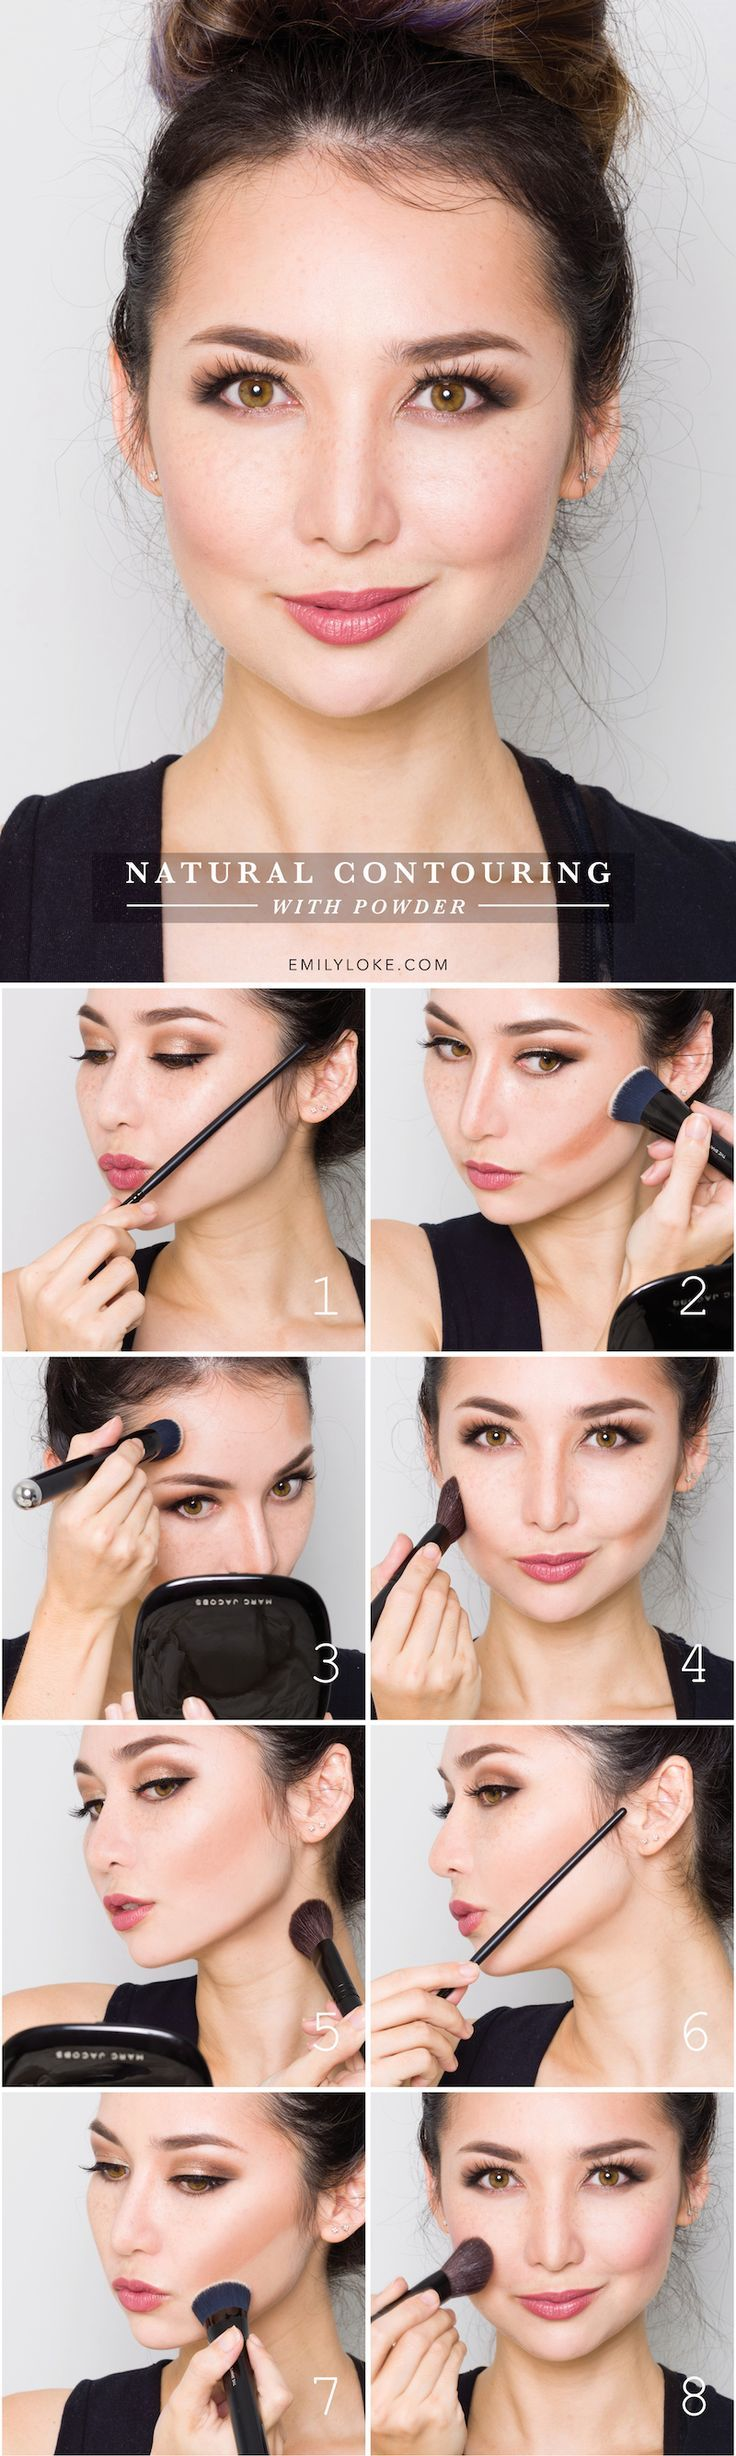 20 Cheat Sheets to Help You Up Your Makeup Game  Blog by Pampadour